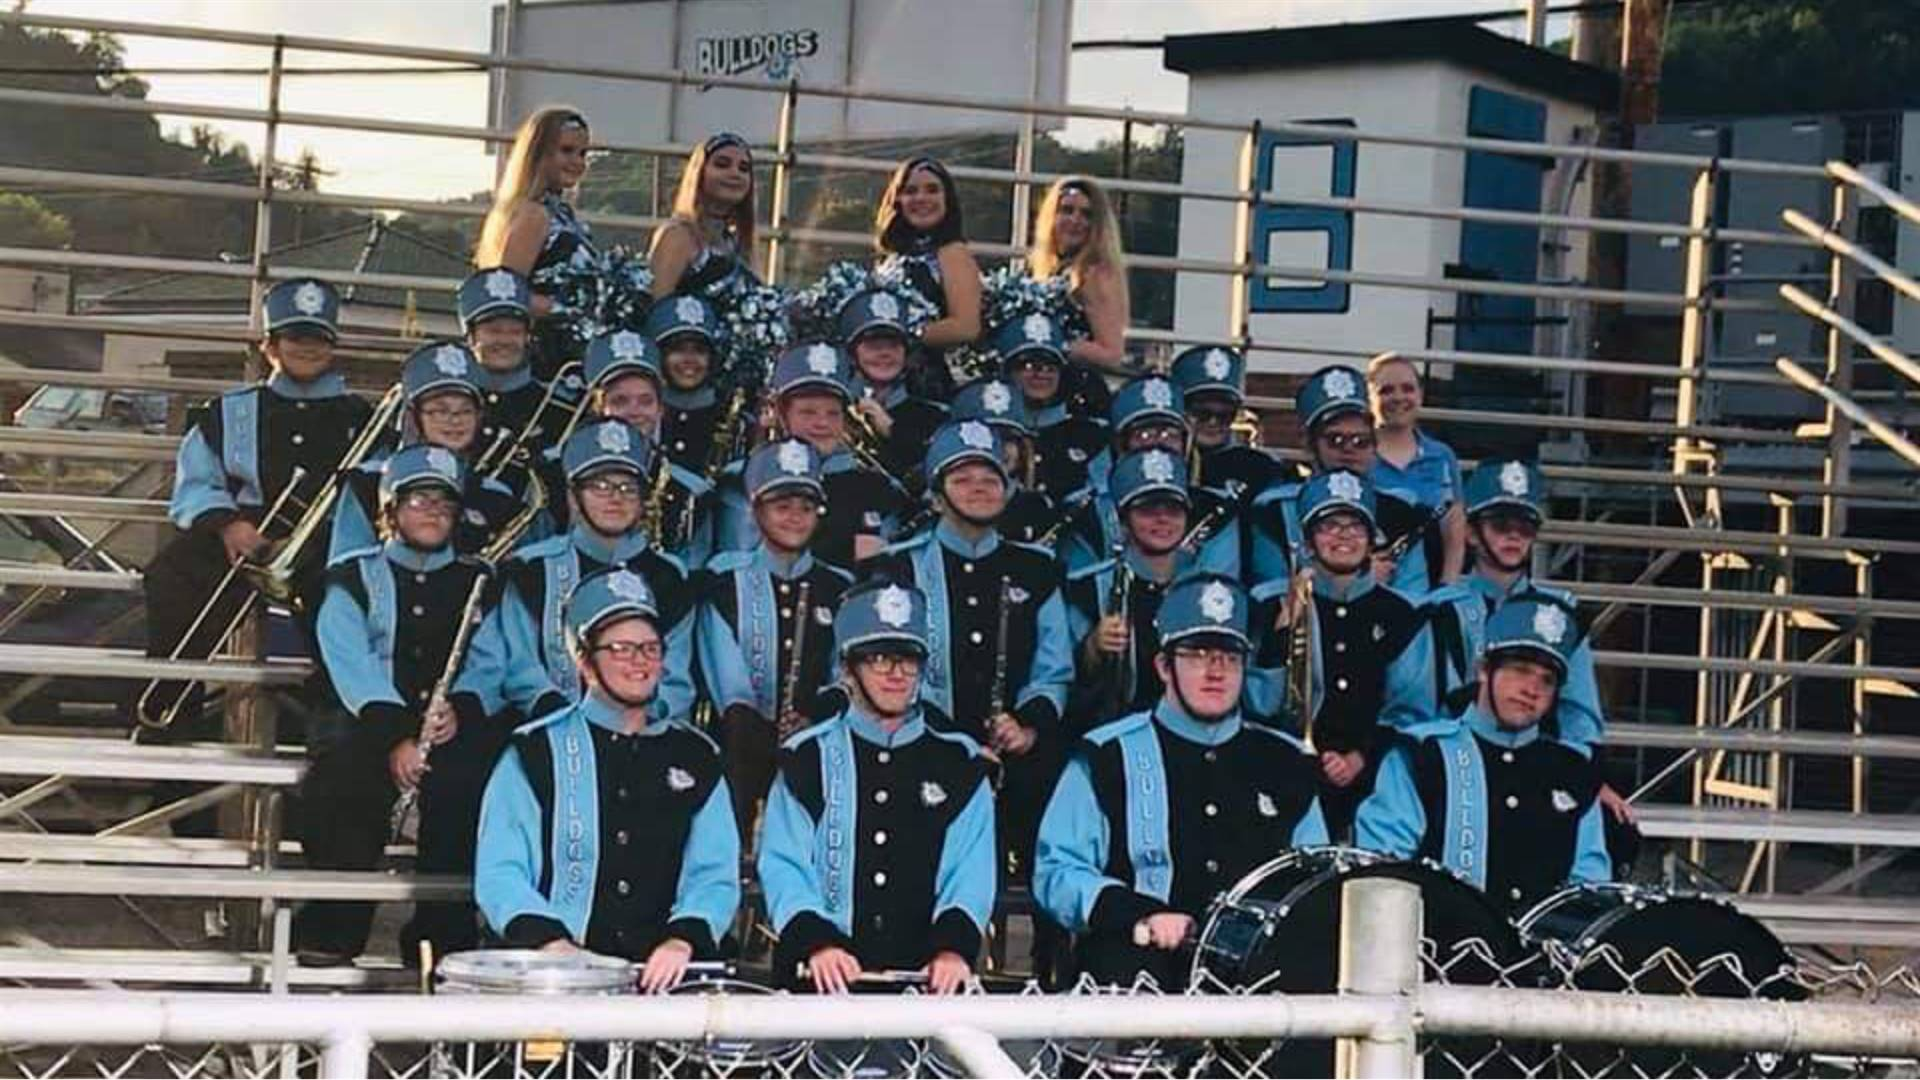 Bridgeport Marching Band 2019-2020